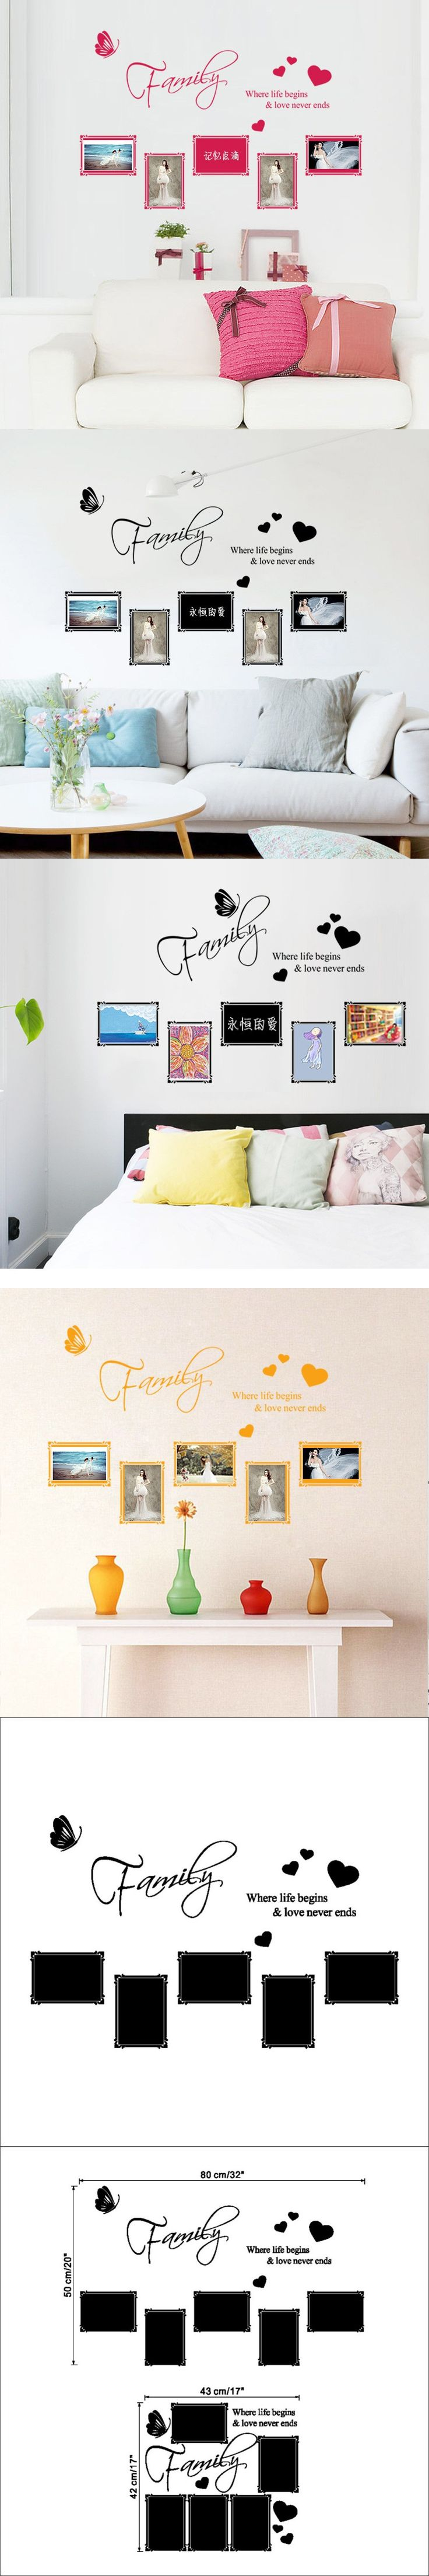 English Love Butterfly Photo Frame Wall Stickers, Wall Stickers Warmly Decorated Home Arts Series ZY8562A $8.98